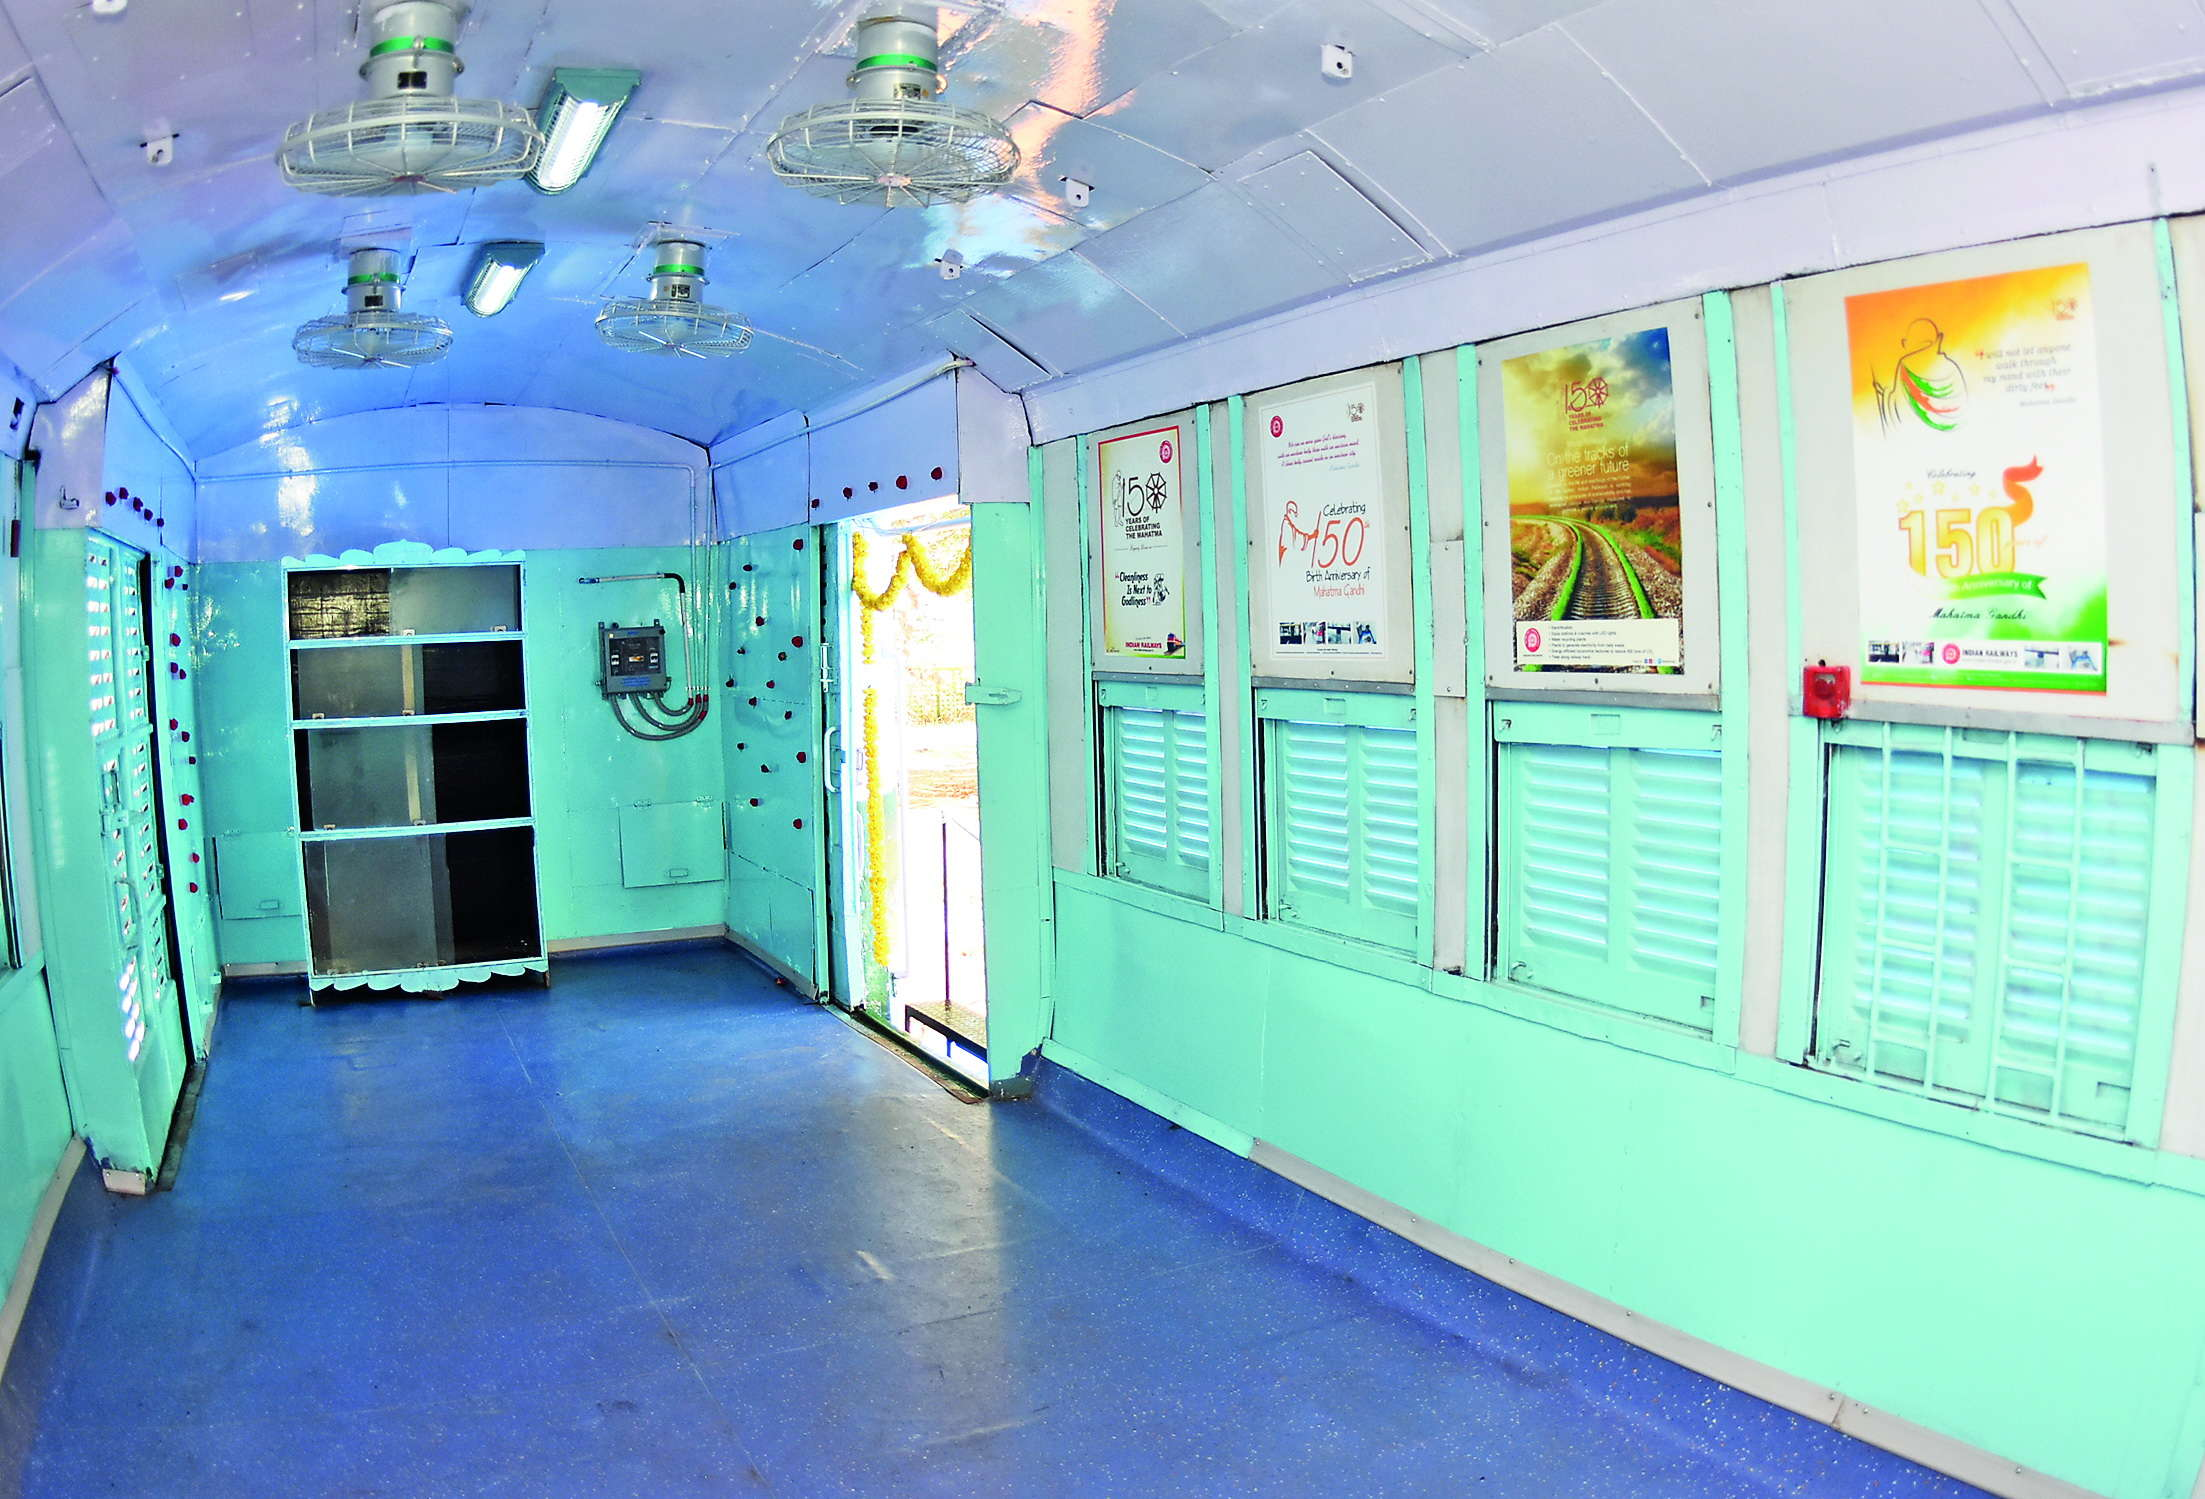 Senior officials from the railway workshop came up with the idea of  converting a few old coaches into classrooms